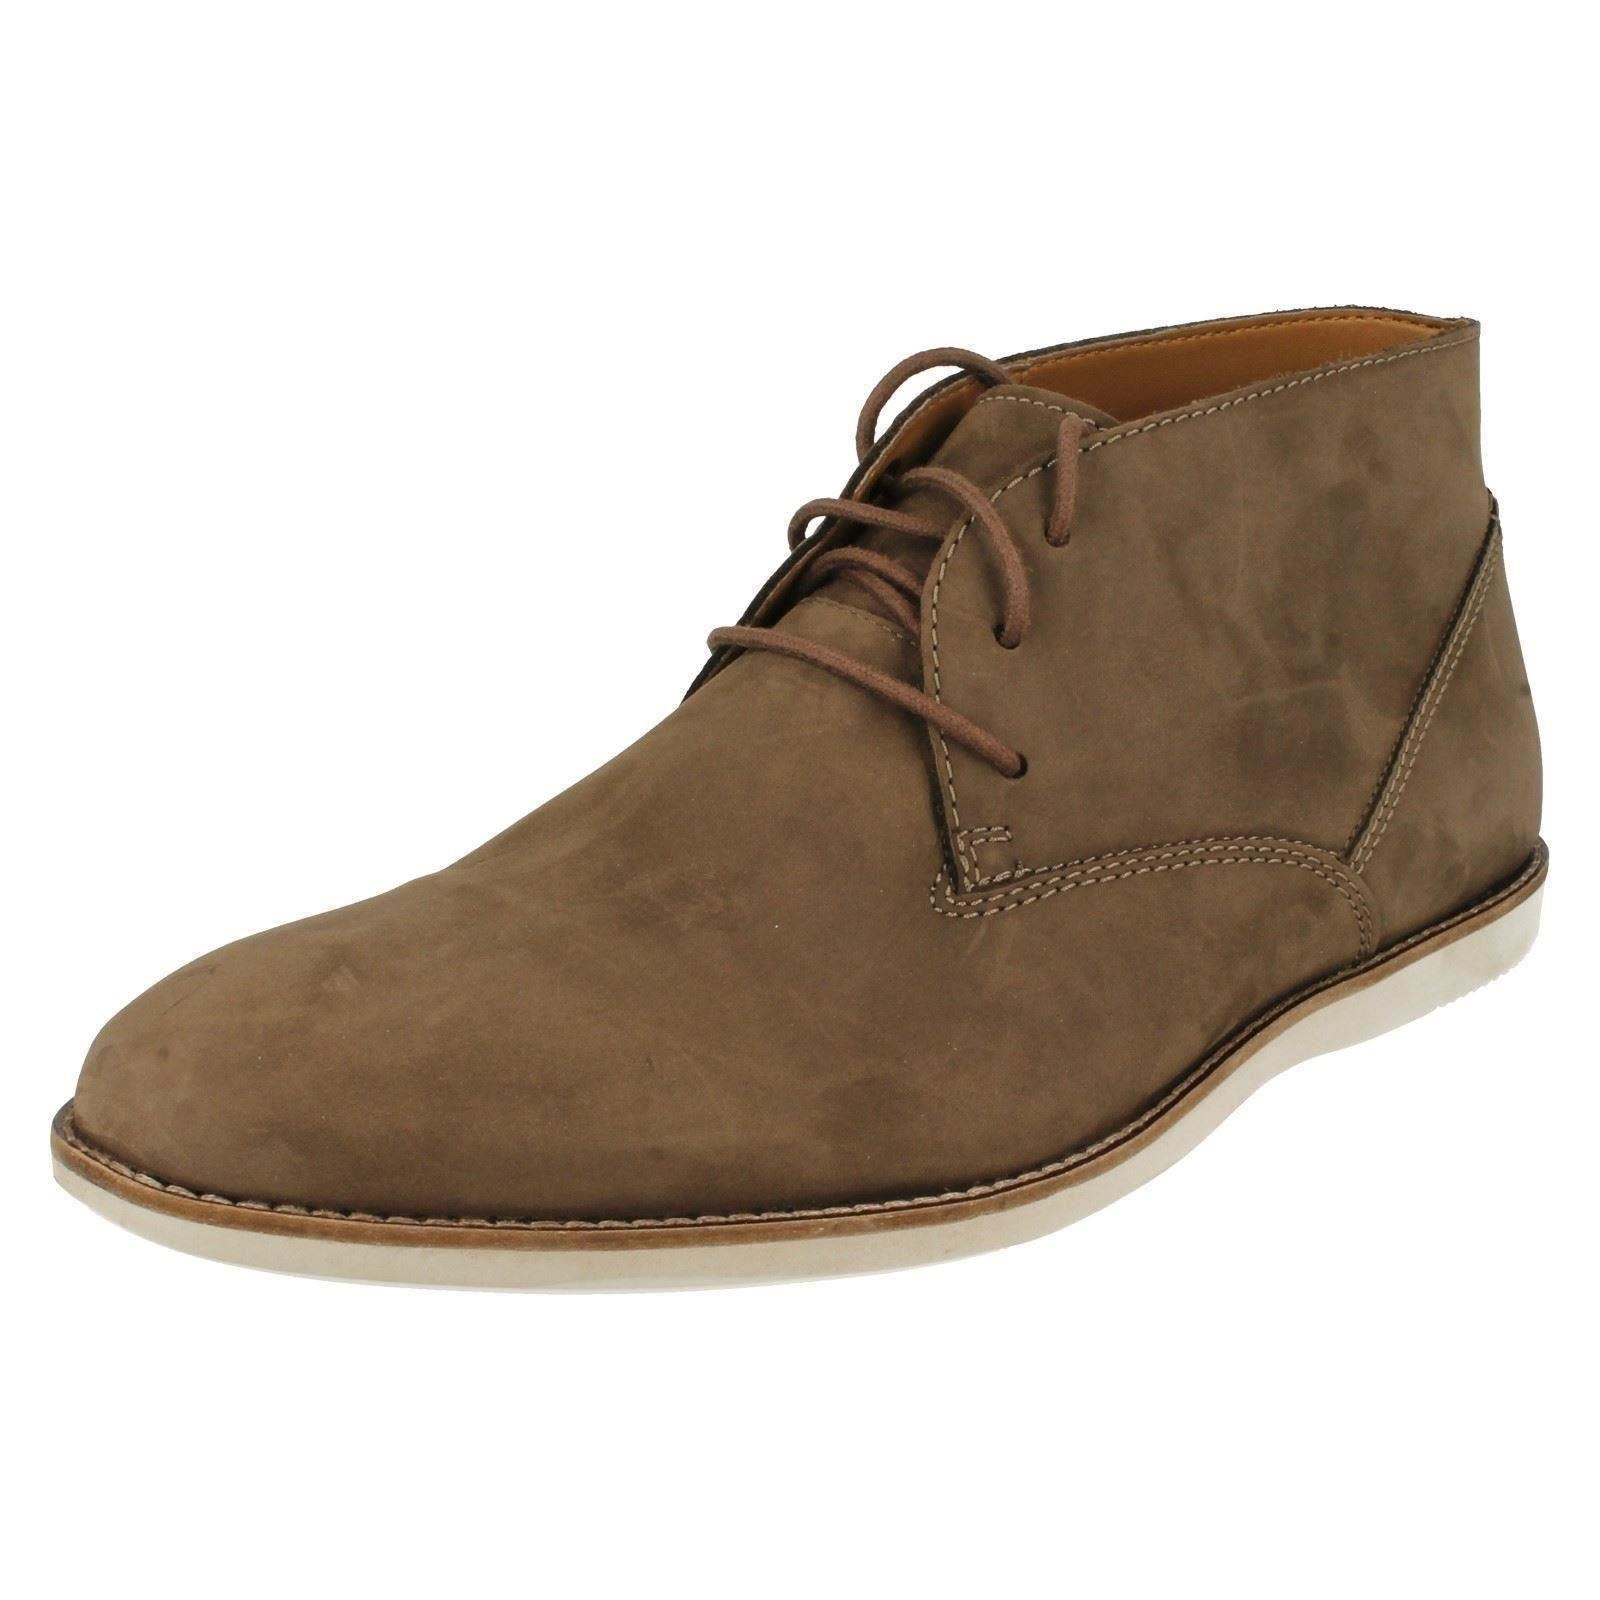 Men's Clarks Casual Casual Casual Desert Lace Up Ankle Boots The Style -  Franson Top 864762